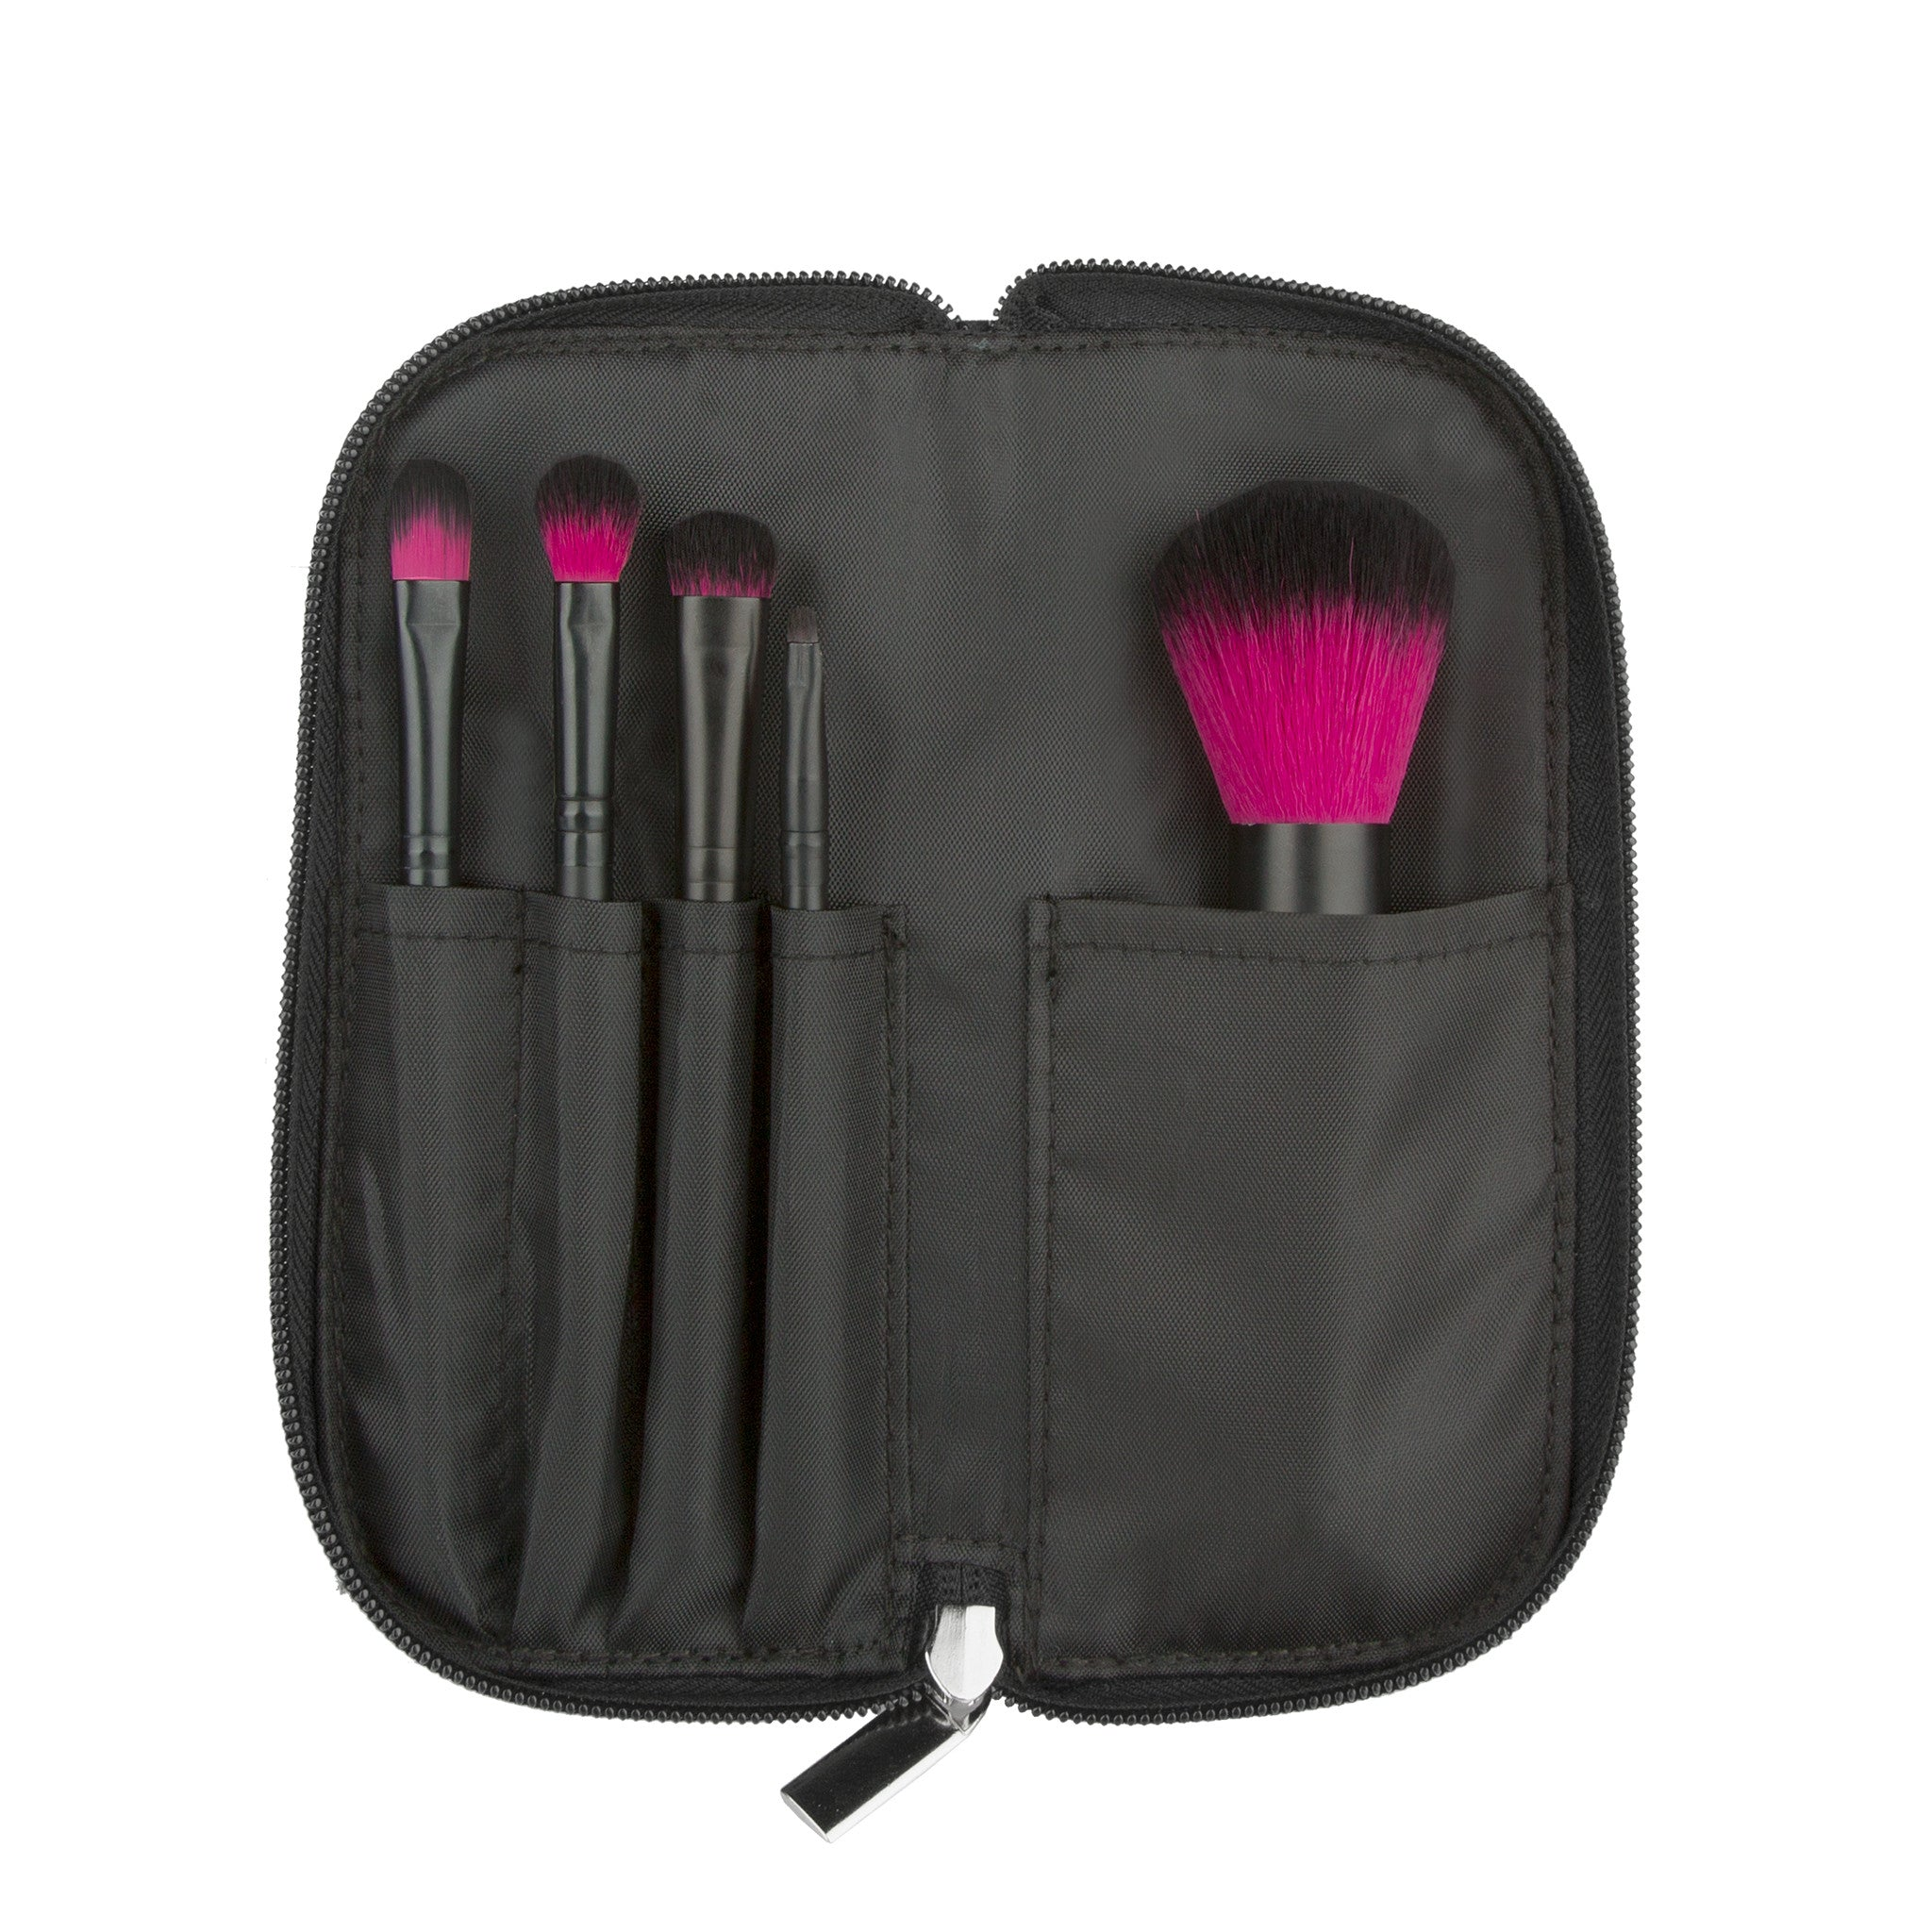 Coastal Scents coupon: Color Me Fuchsia Brush Set